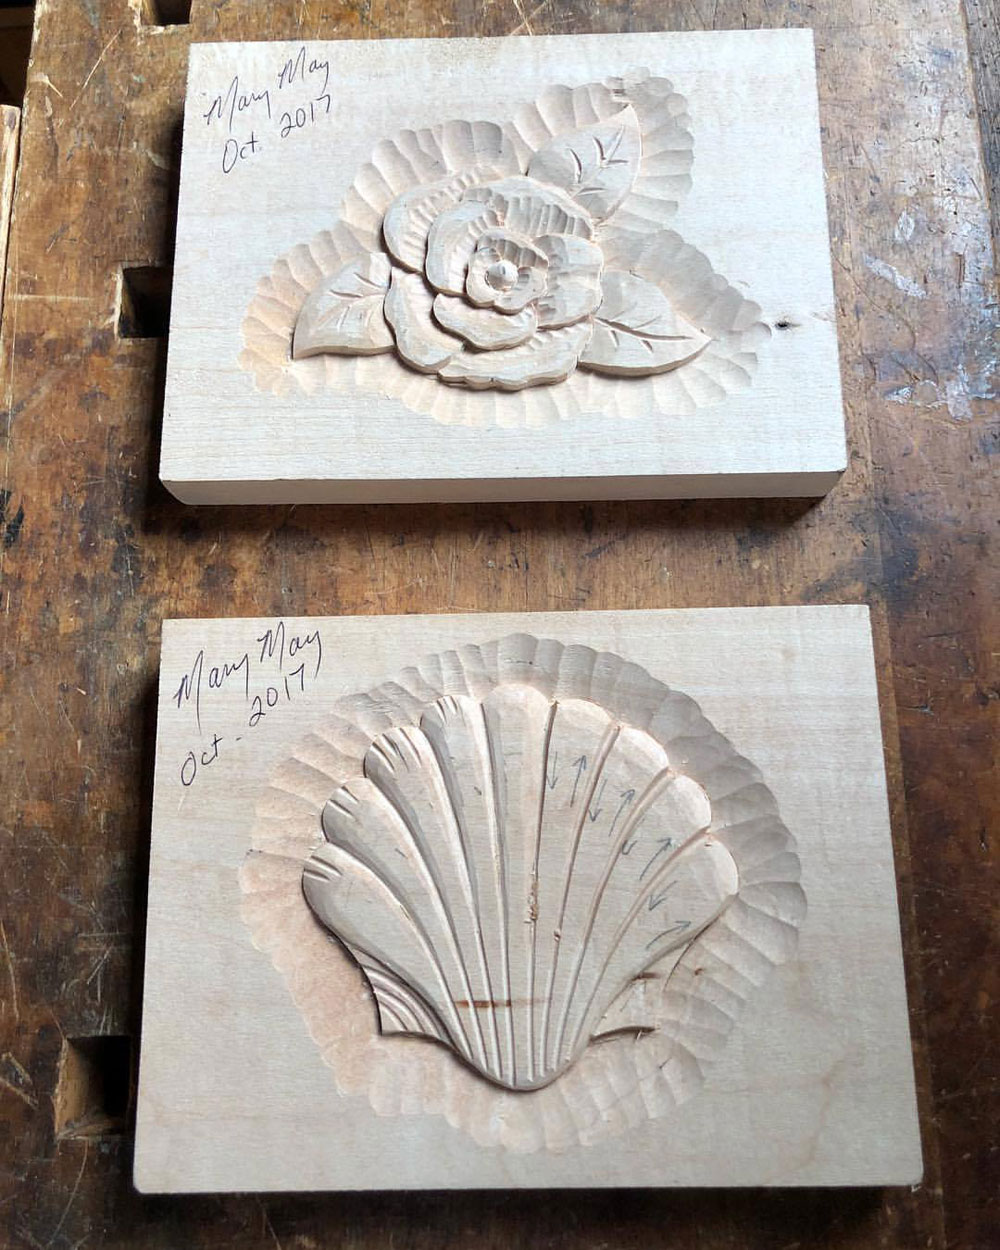 Mary May woodcarving interview   Amy Herschleb